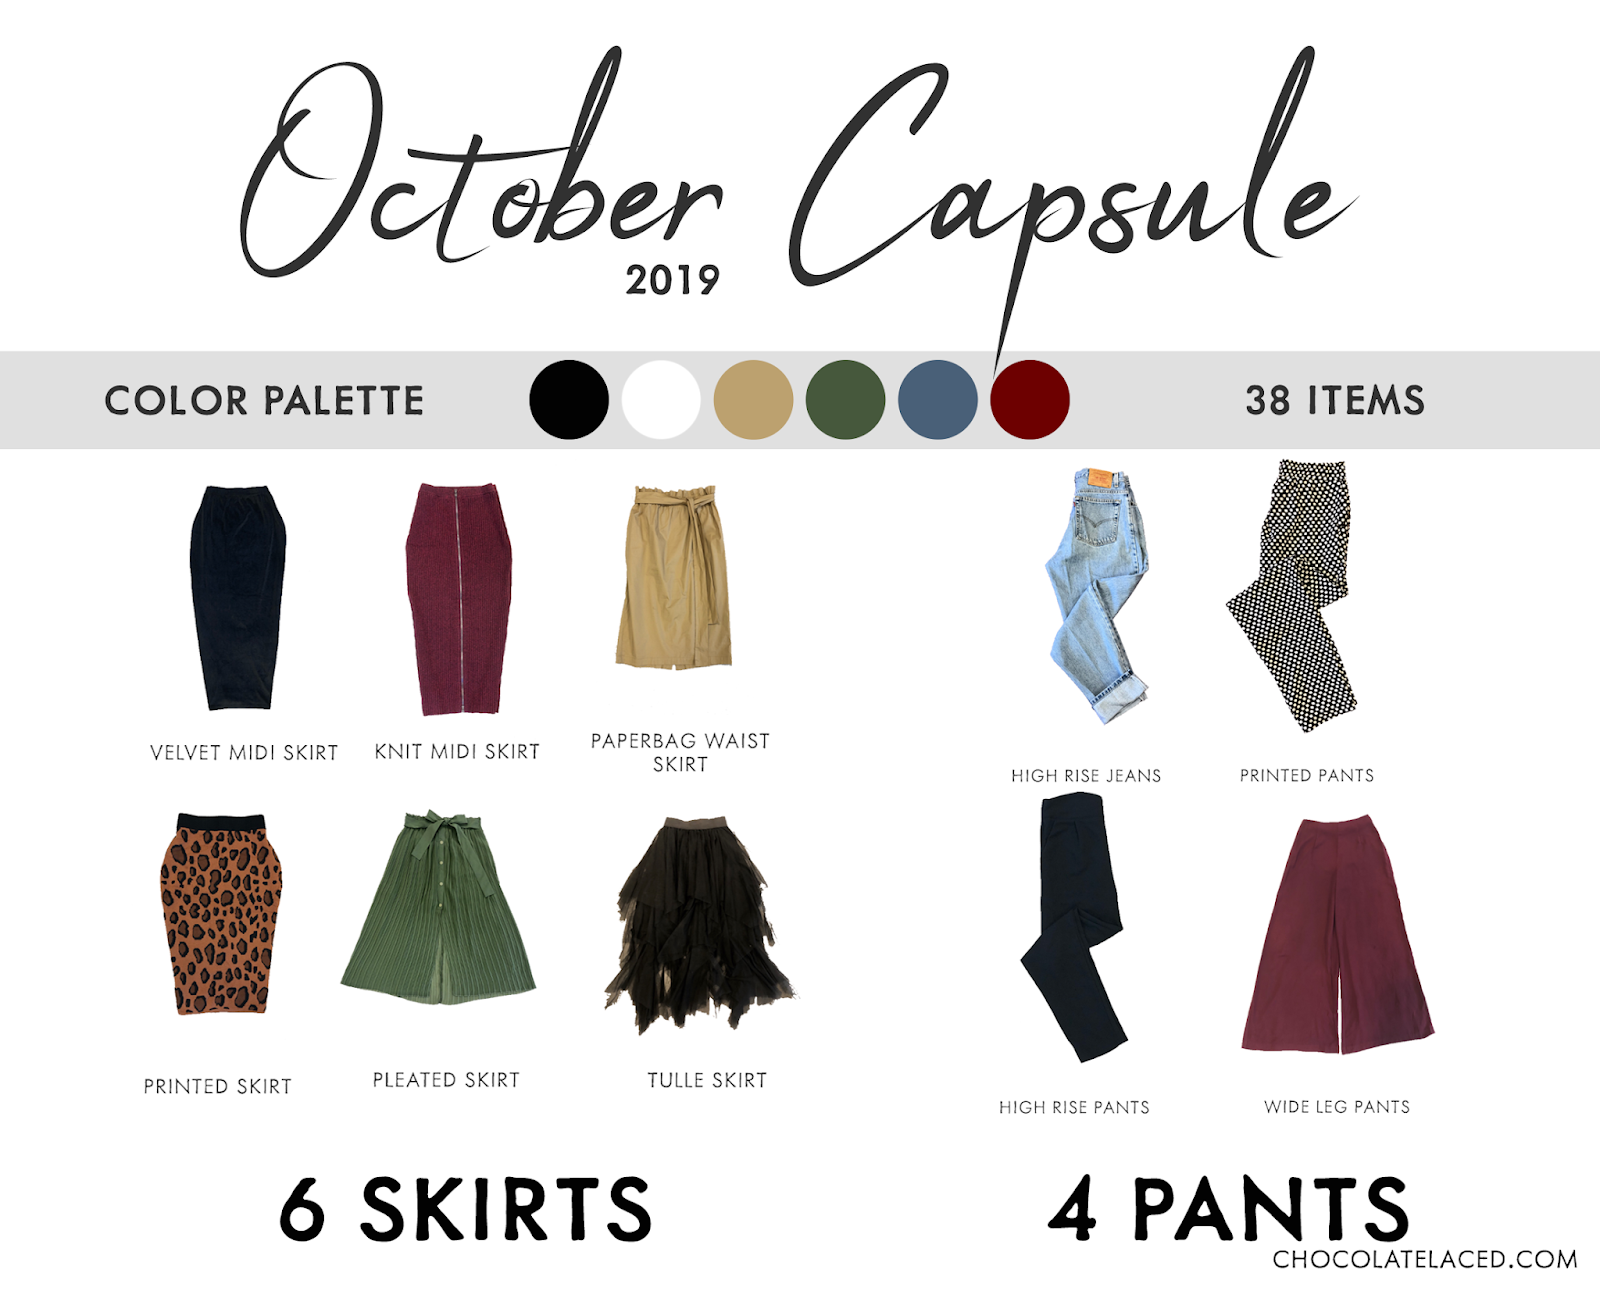 October capsule closet skirts and pants